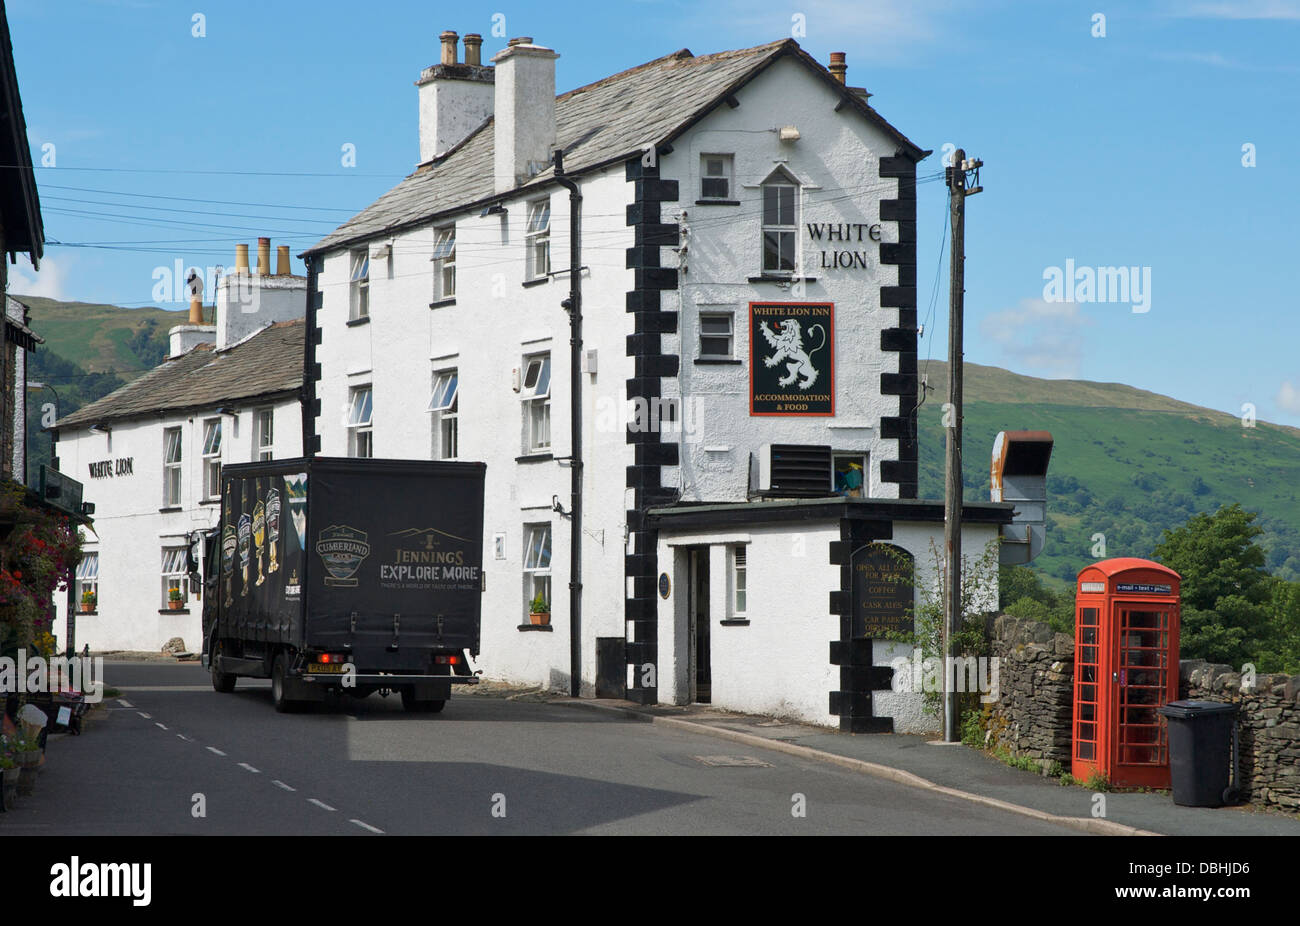 Jennings Brewery delivery van passing the White Lion Inn, Patterdale, Lake District National Park, Cumbria, England - Stock Image